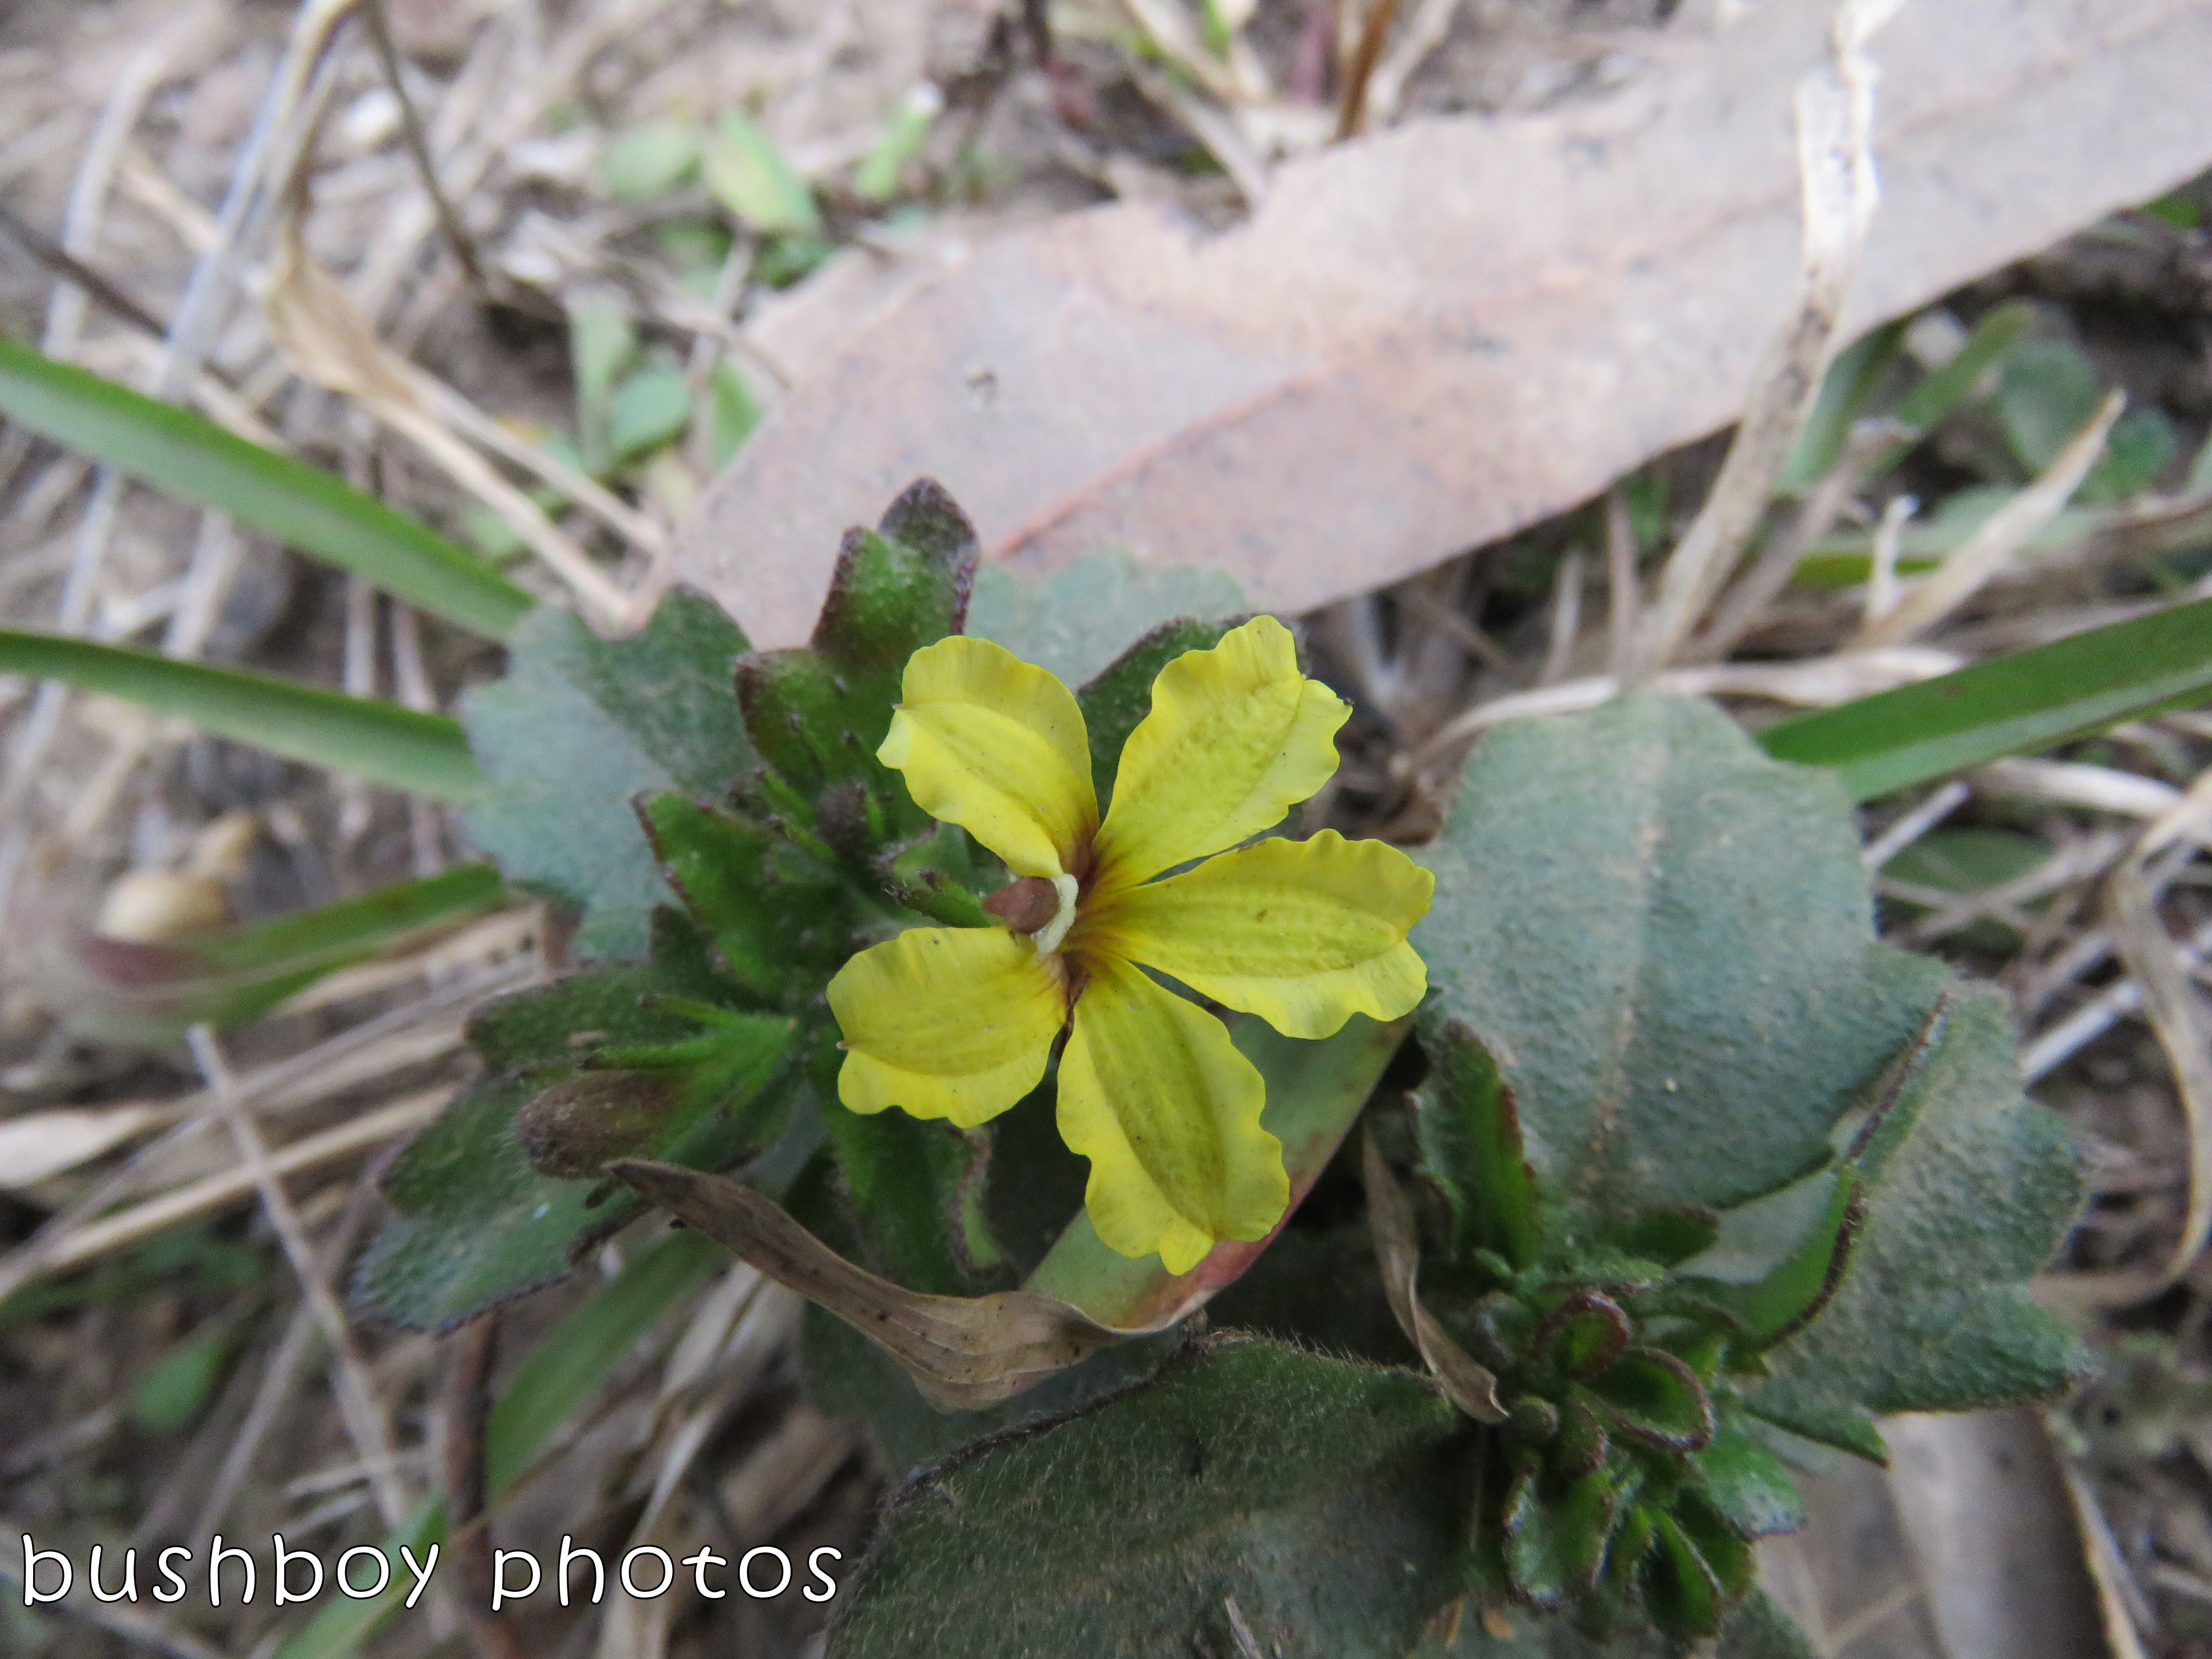 native flower_yellow hairy leaves_named_home_august 2017